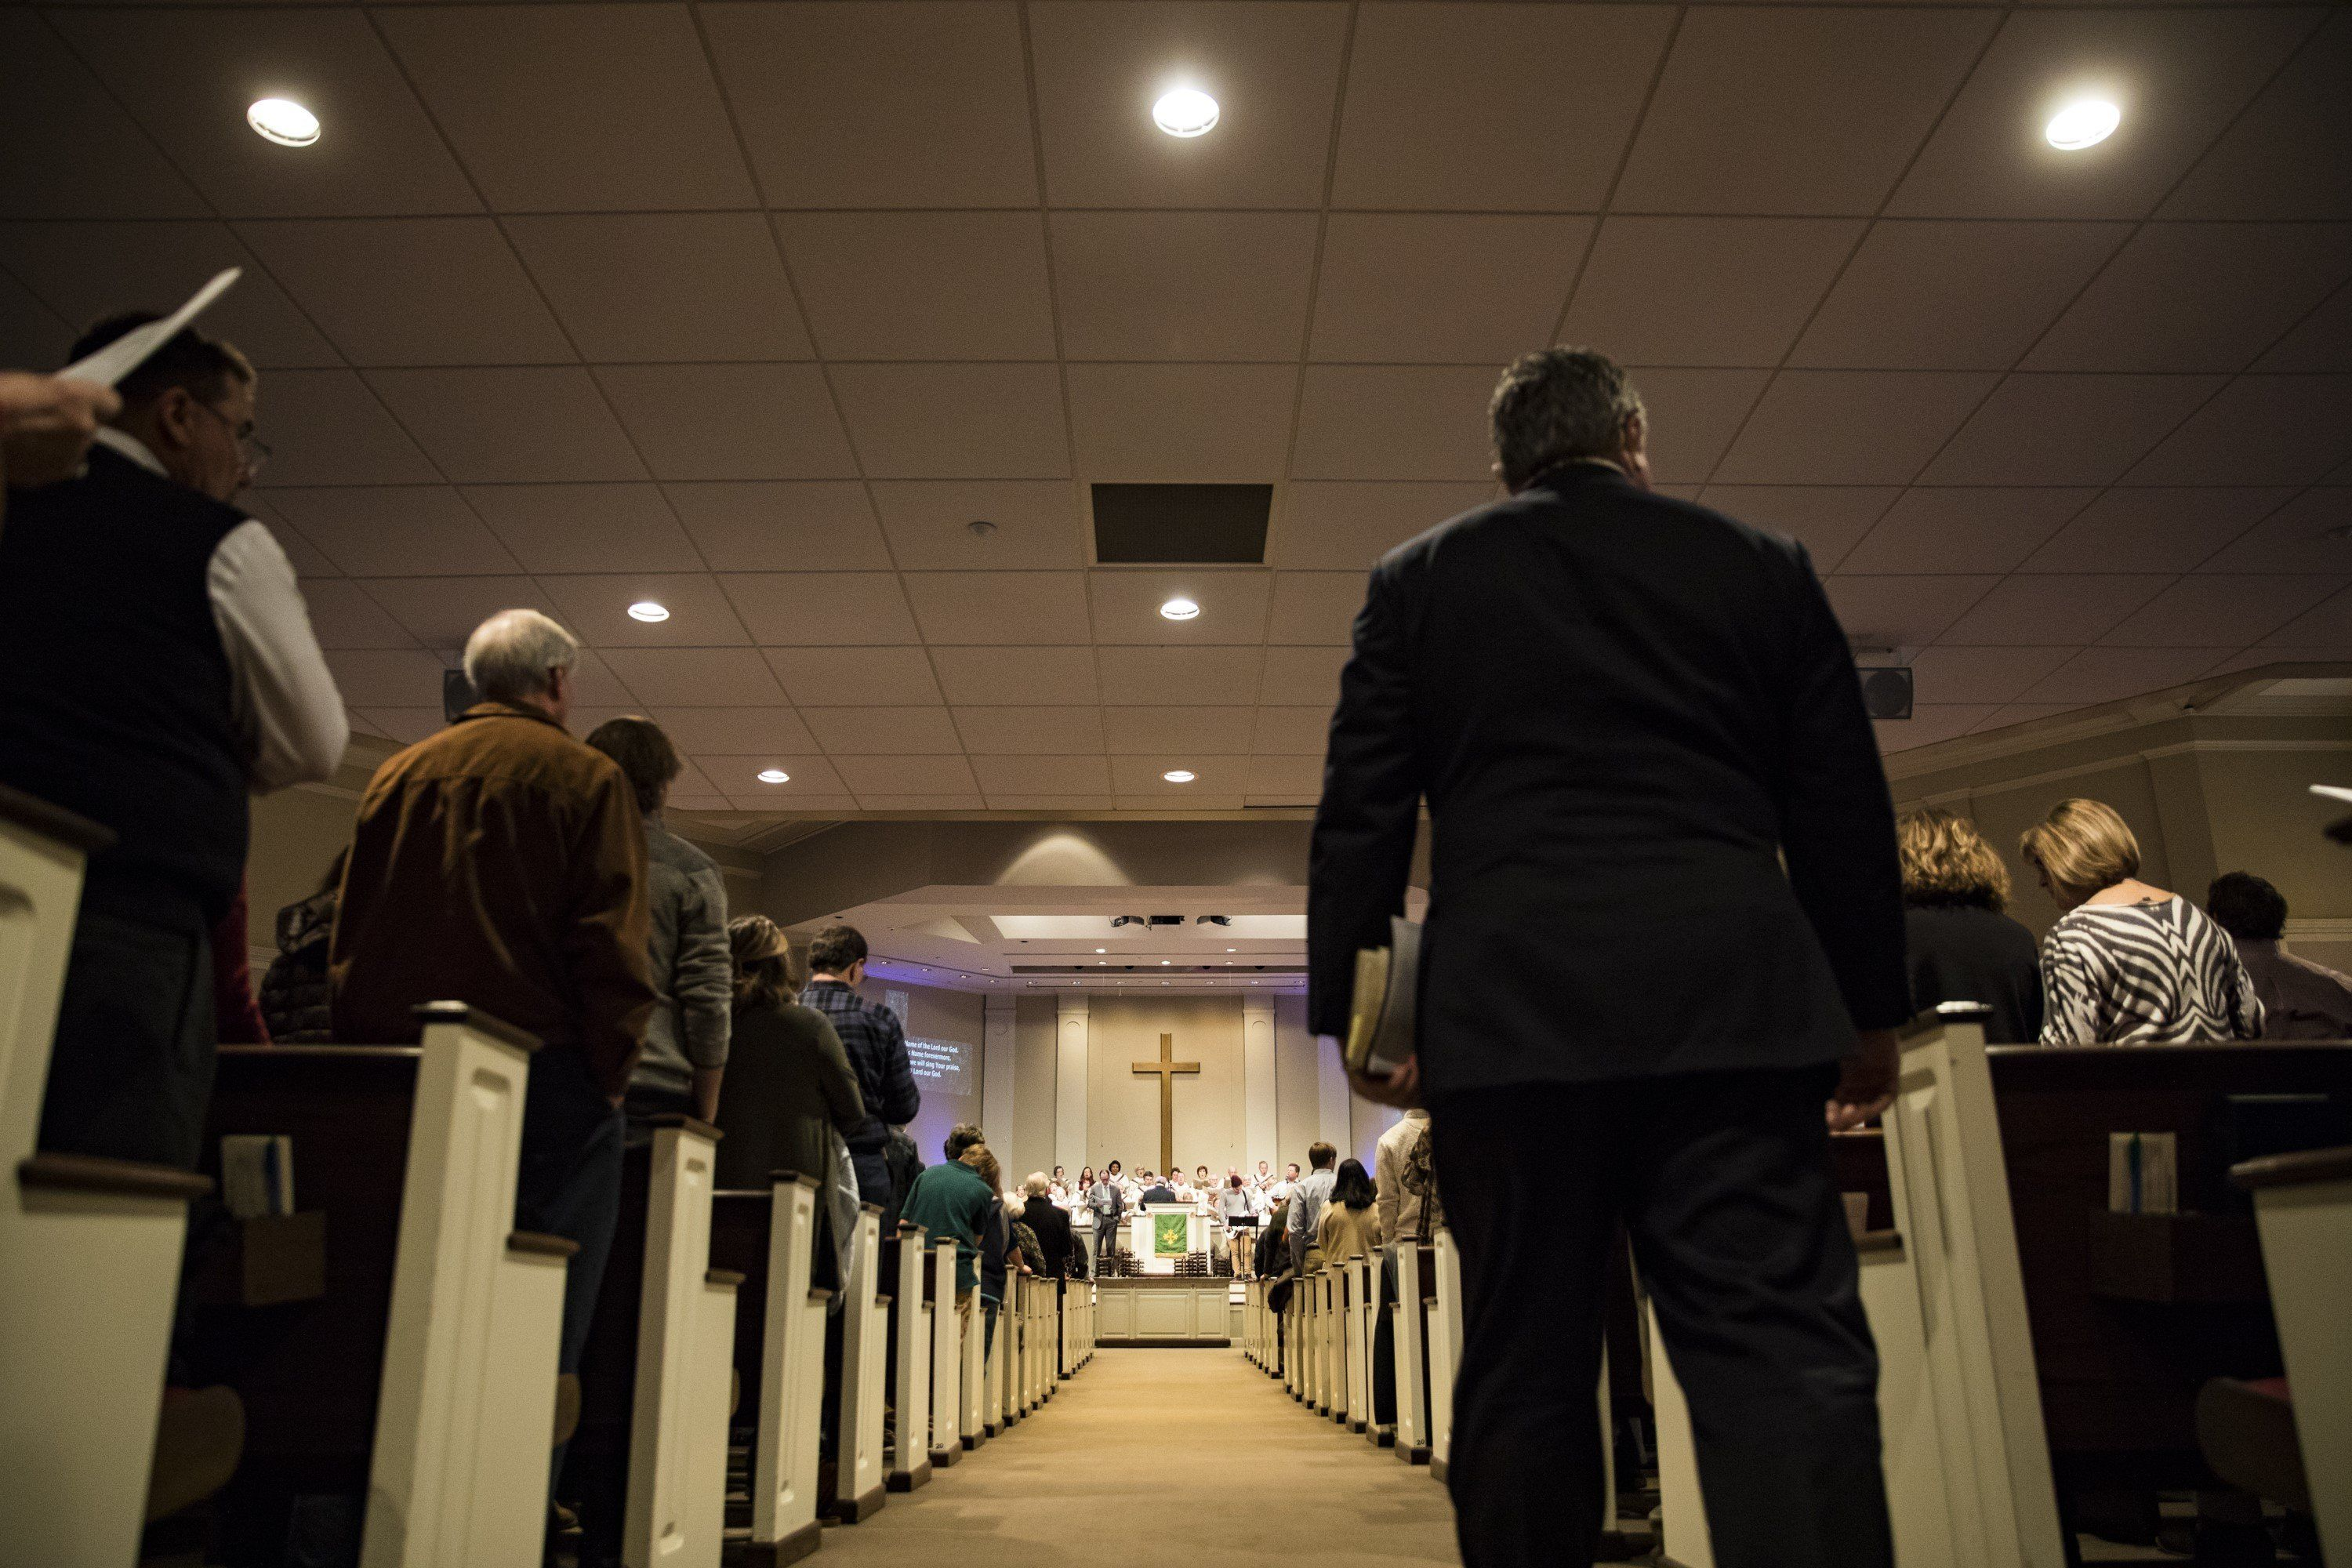 Evangelical Christians gather for Sunday worship service at First Evangelical Church in Memphis, Tennessee, on Jan. 7, 2018.